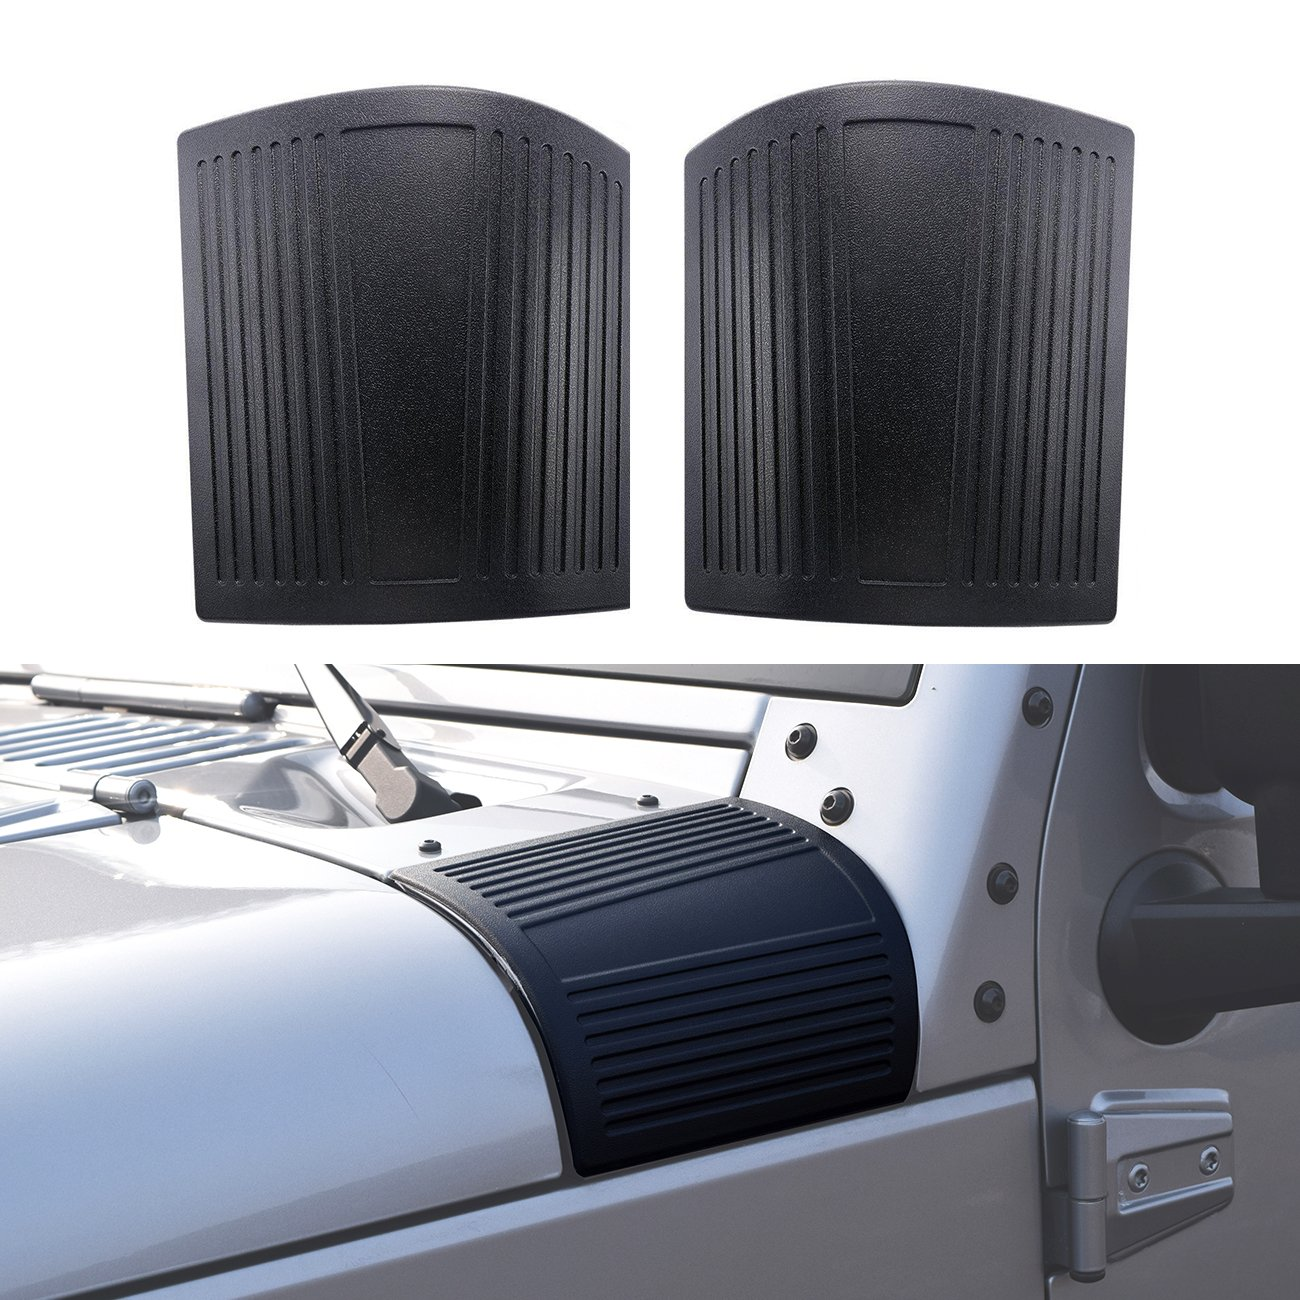 IParts Black Cowl Body Armor for Jeep Wrangler JK JKU Unlimited Rubicon Sahara X Off Road Sport Exterior Accessories Parts 2007 2008 2009 2010 2011 2012 2013 2014 2015 2016 2017 PartsSupplier